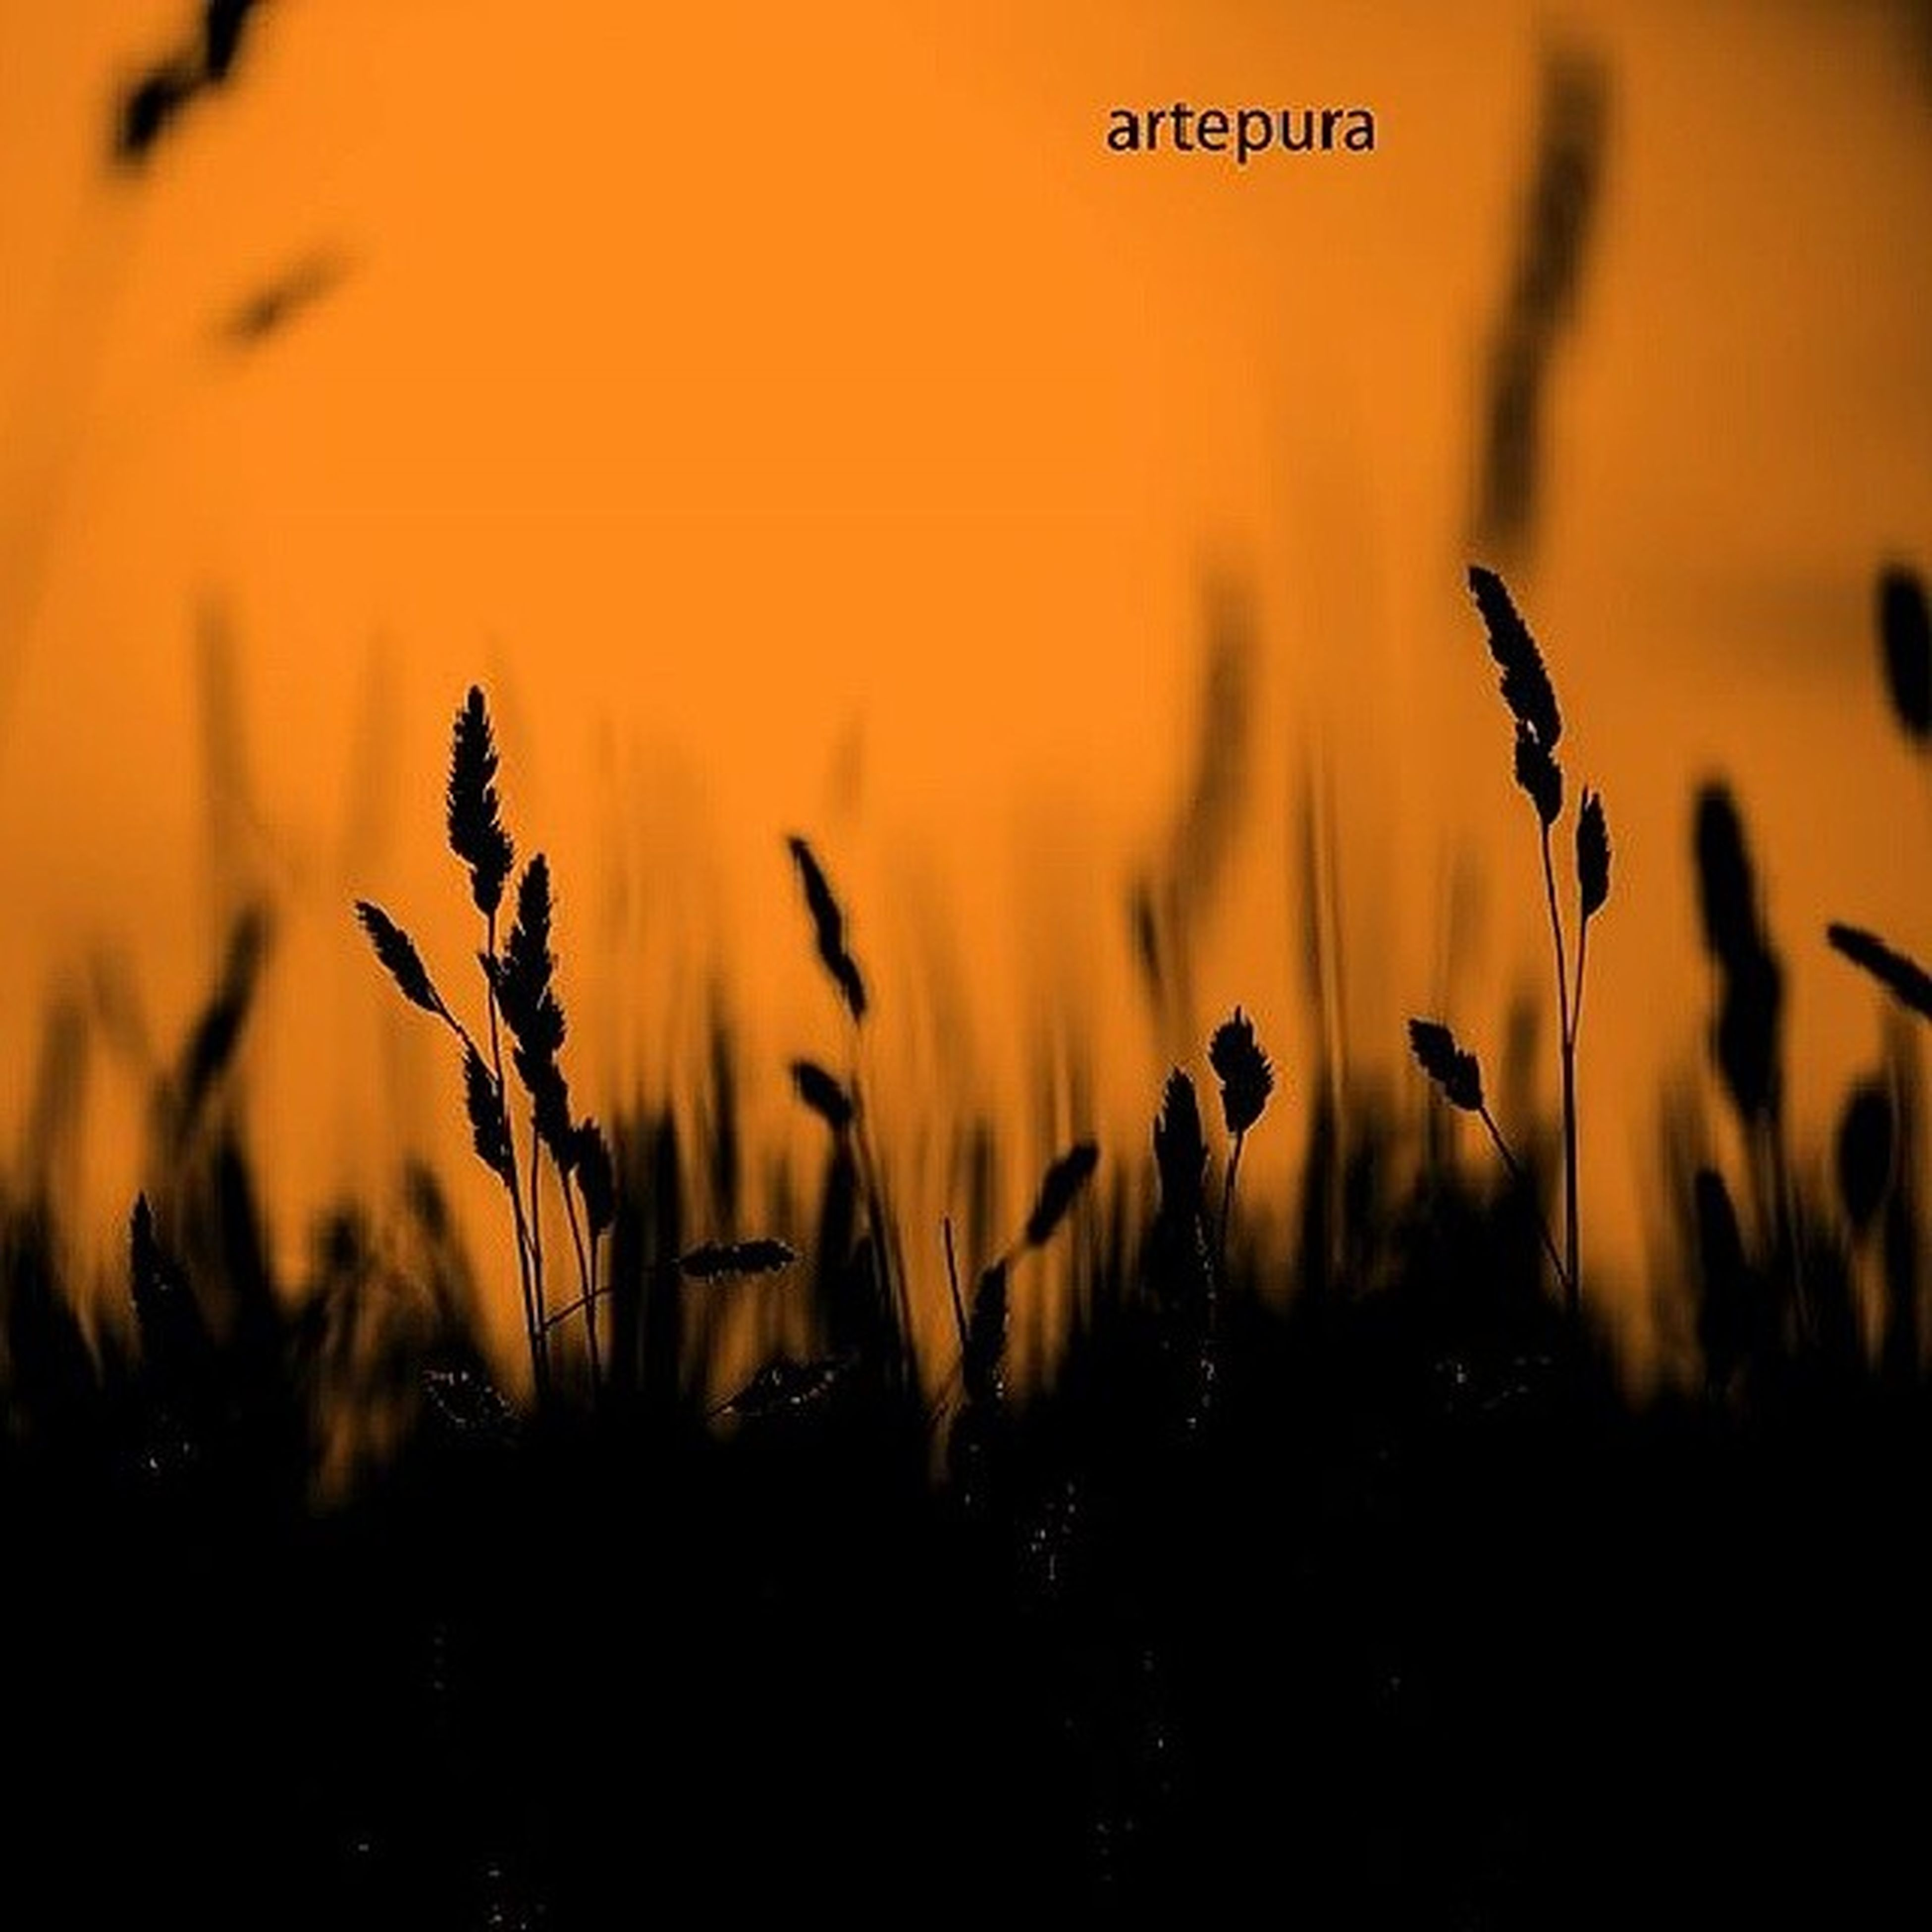 sunset, selective focus, orange color, nature, field, focus on foreground, plant, beauty in nature, outdoors, growth, close-up, no people, text, tranquility, silhouette, animal themes, landscape, yellow, dusk